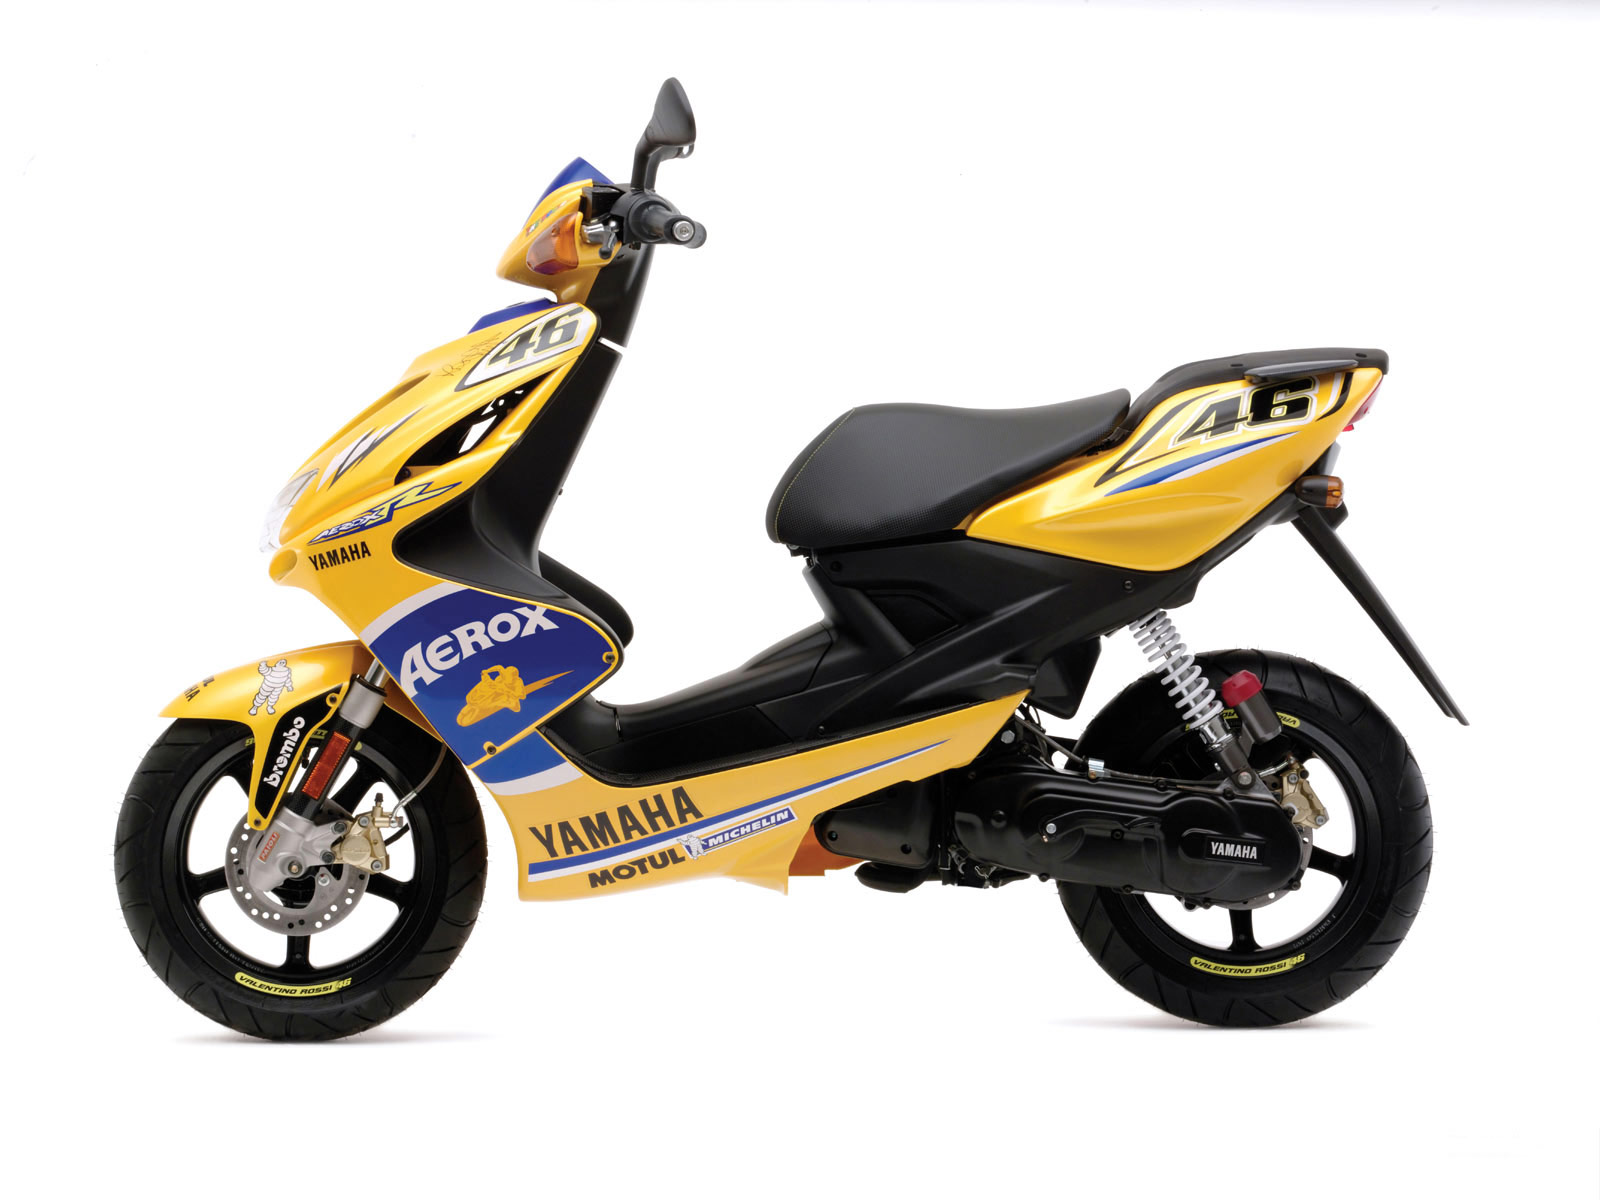 2008 yamaha aerox r race replica scooter pictures. Black Bedroom Furniture Sets. Home Design Ideas